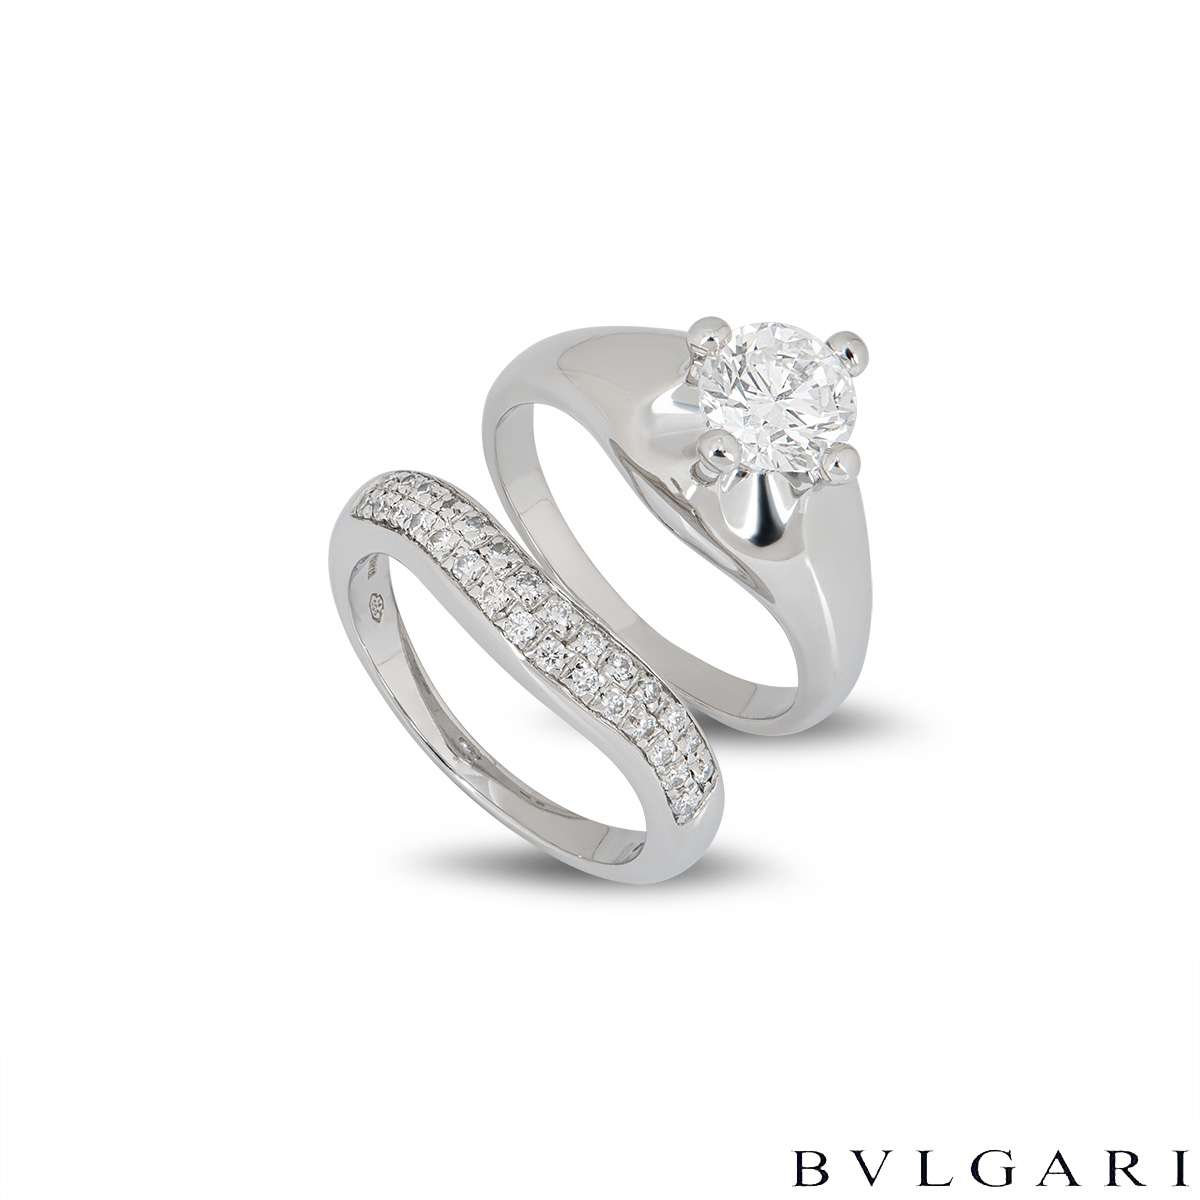 Bvlgari Corona Diamond Bridal Set